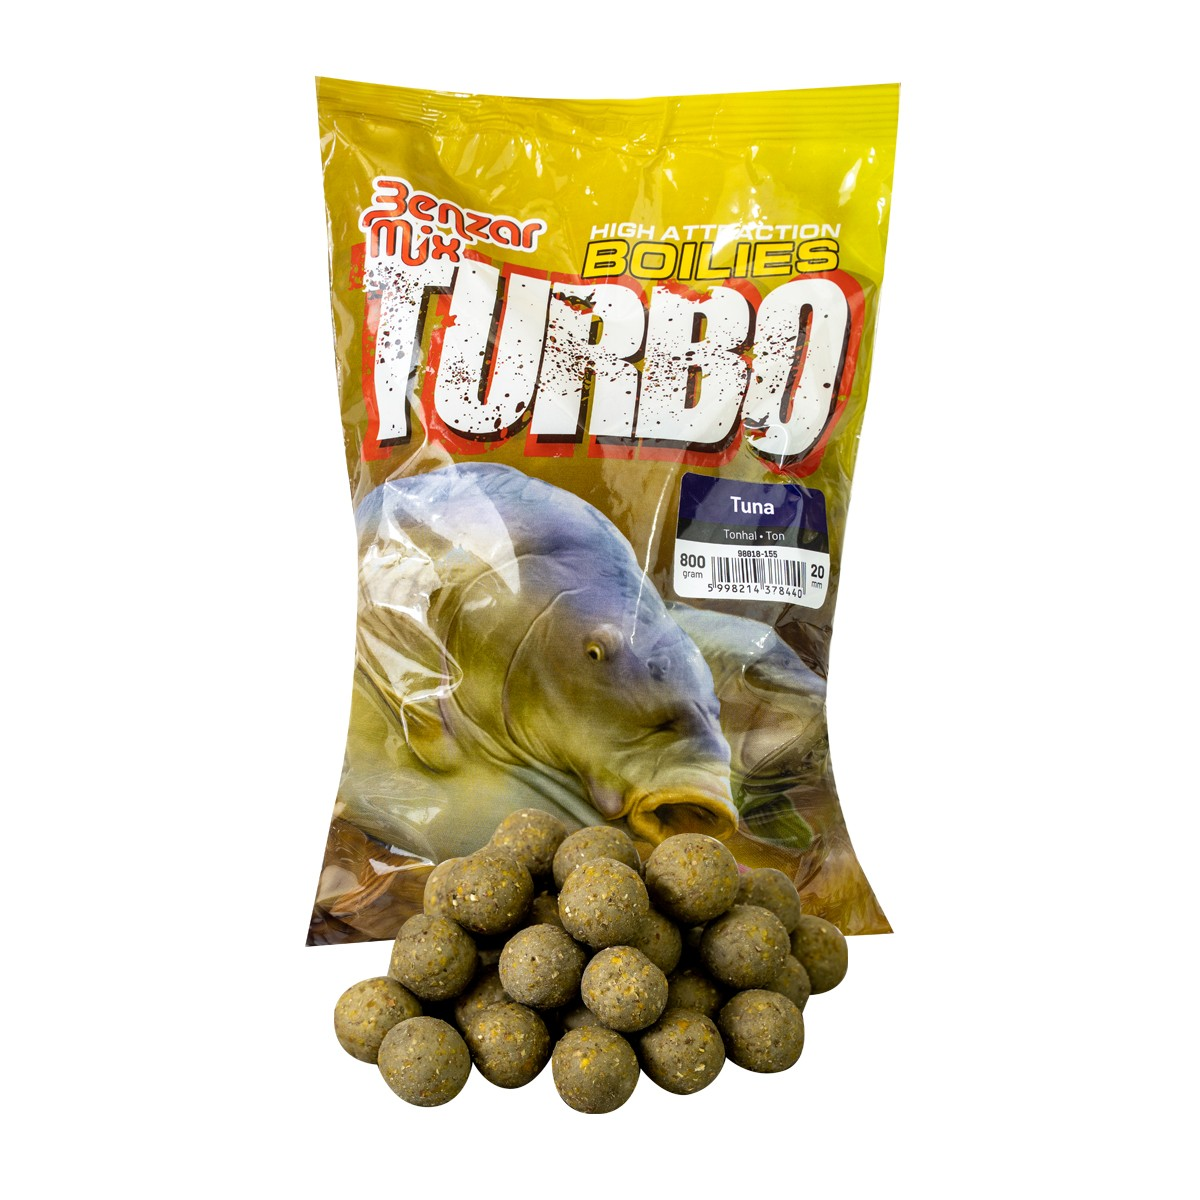 BENZAR TURBO BOILIE 800G 15MM TONHAL